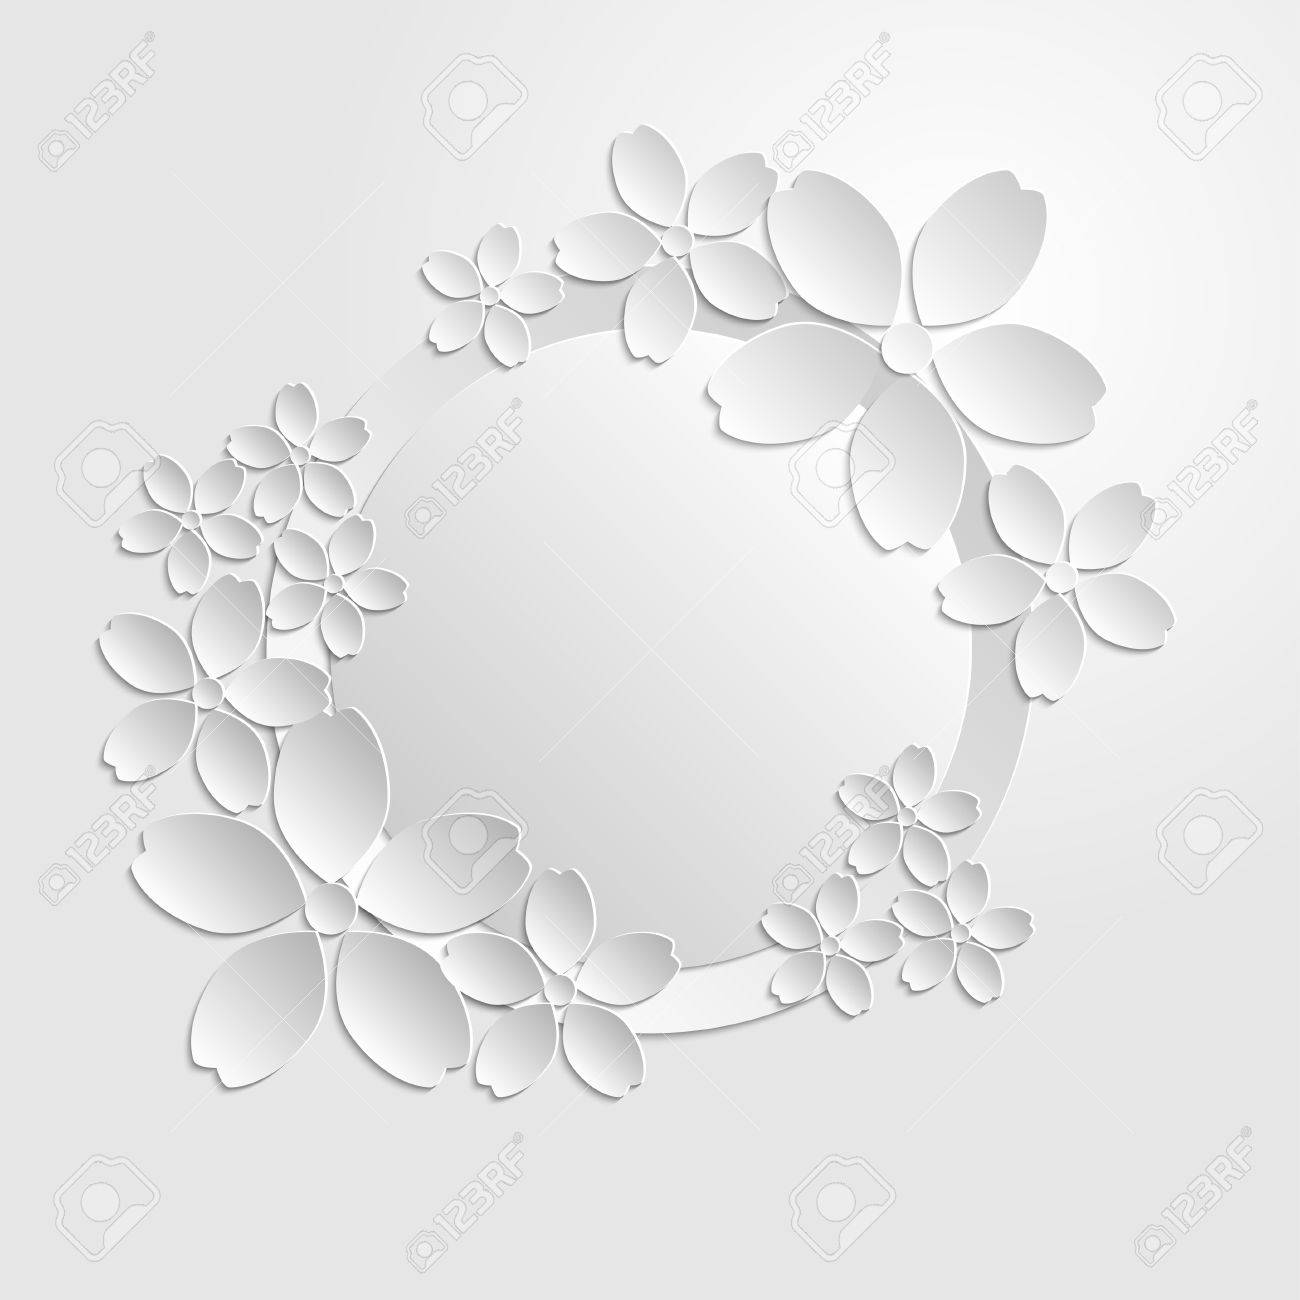 Decorative white paper cut border with white paper flowers 3d decorative white paper cut border with white paper flowers 3d paper composition on white background mightylinksfo